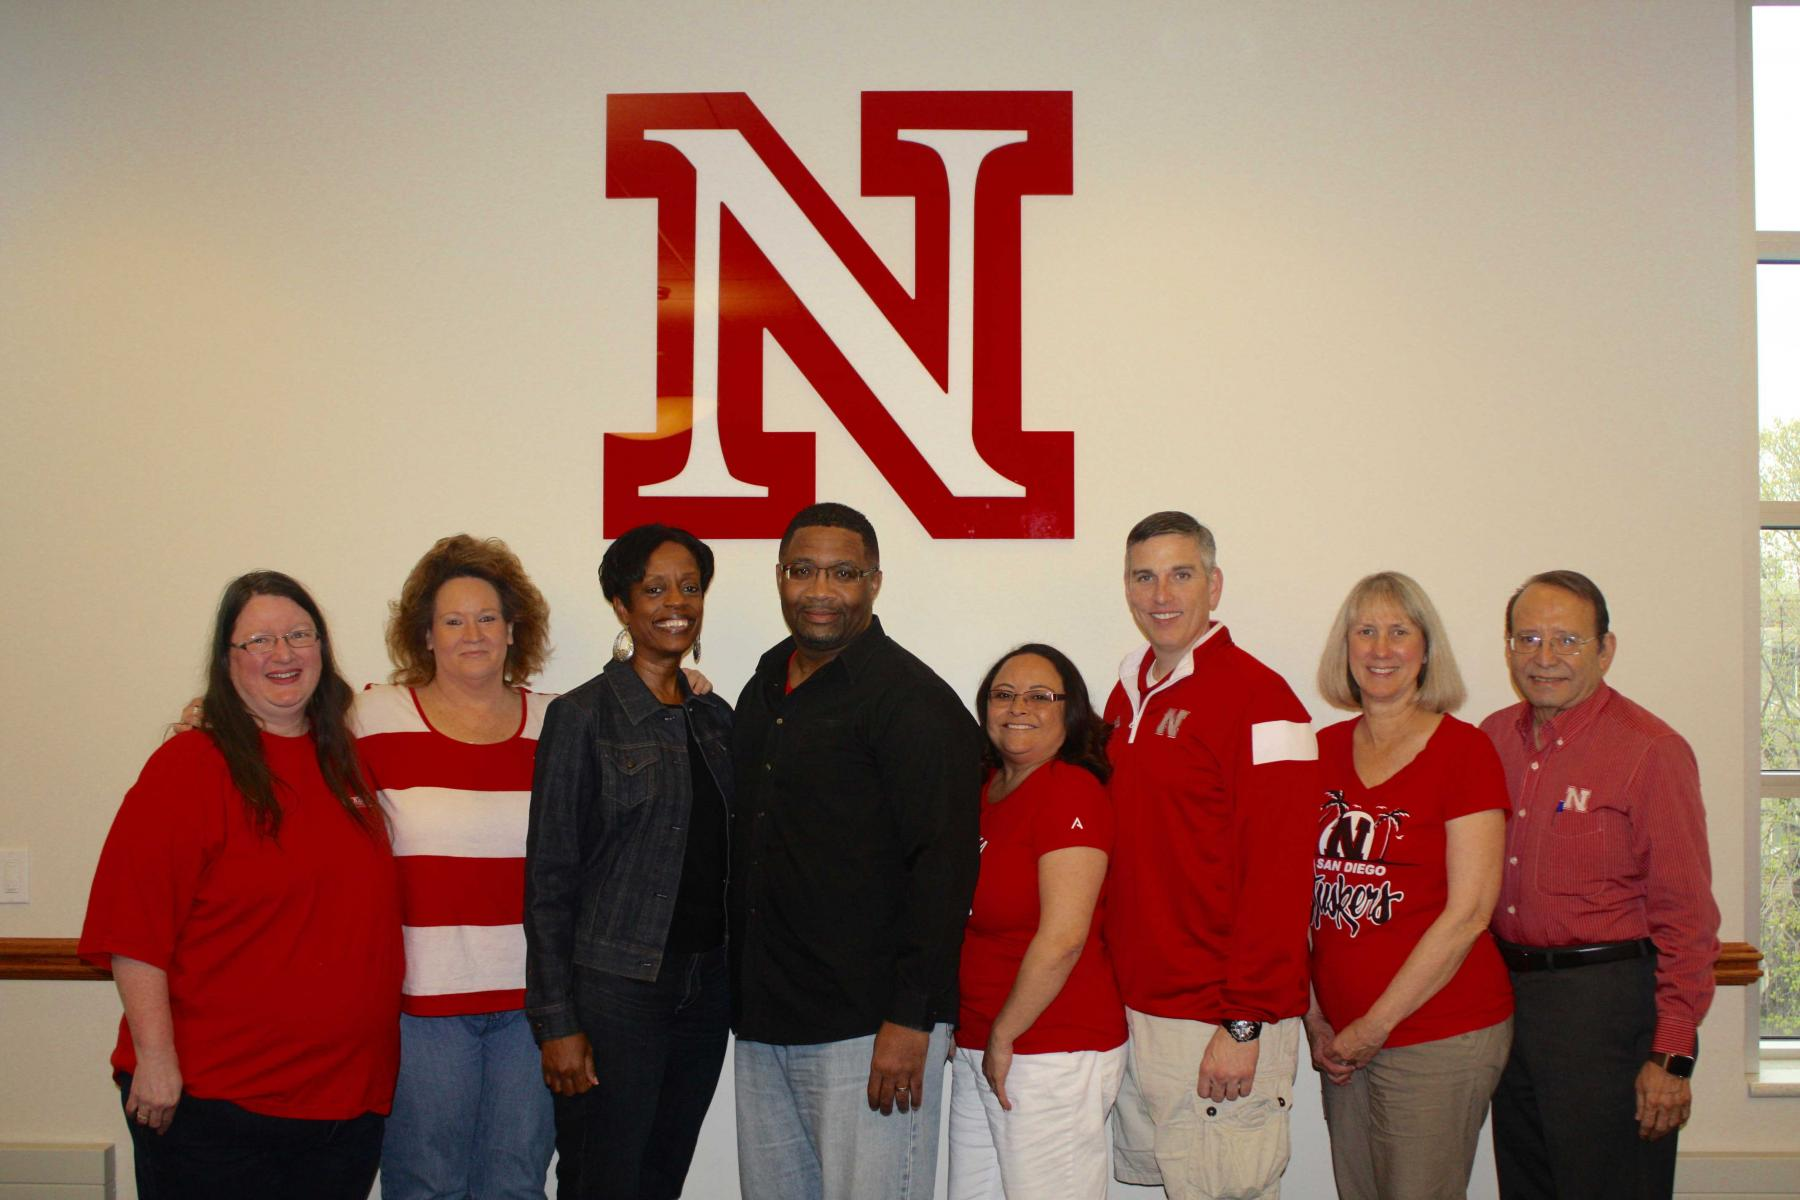 UNL Parents Association board members for 2016